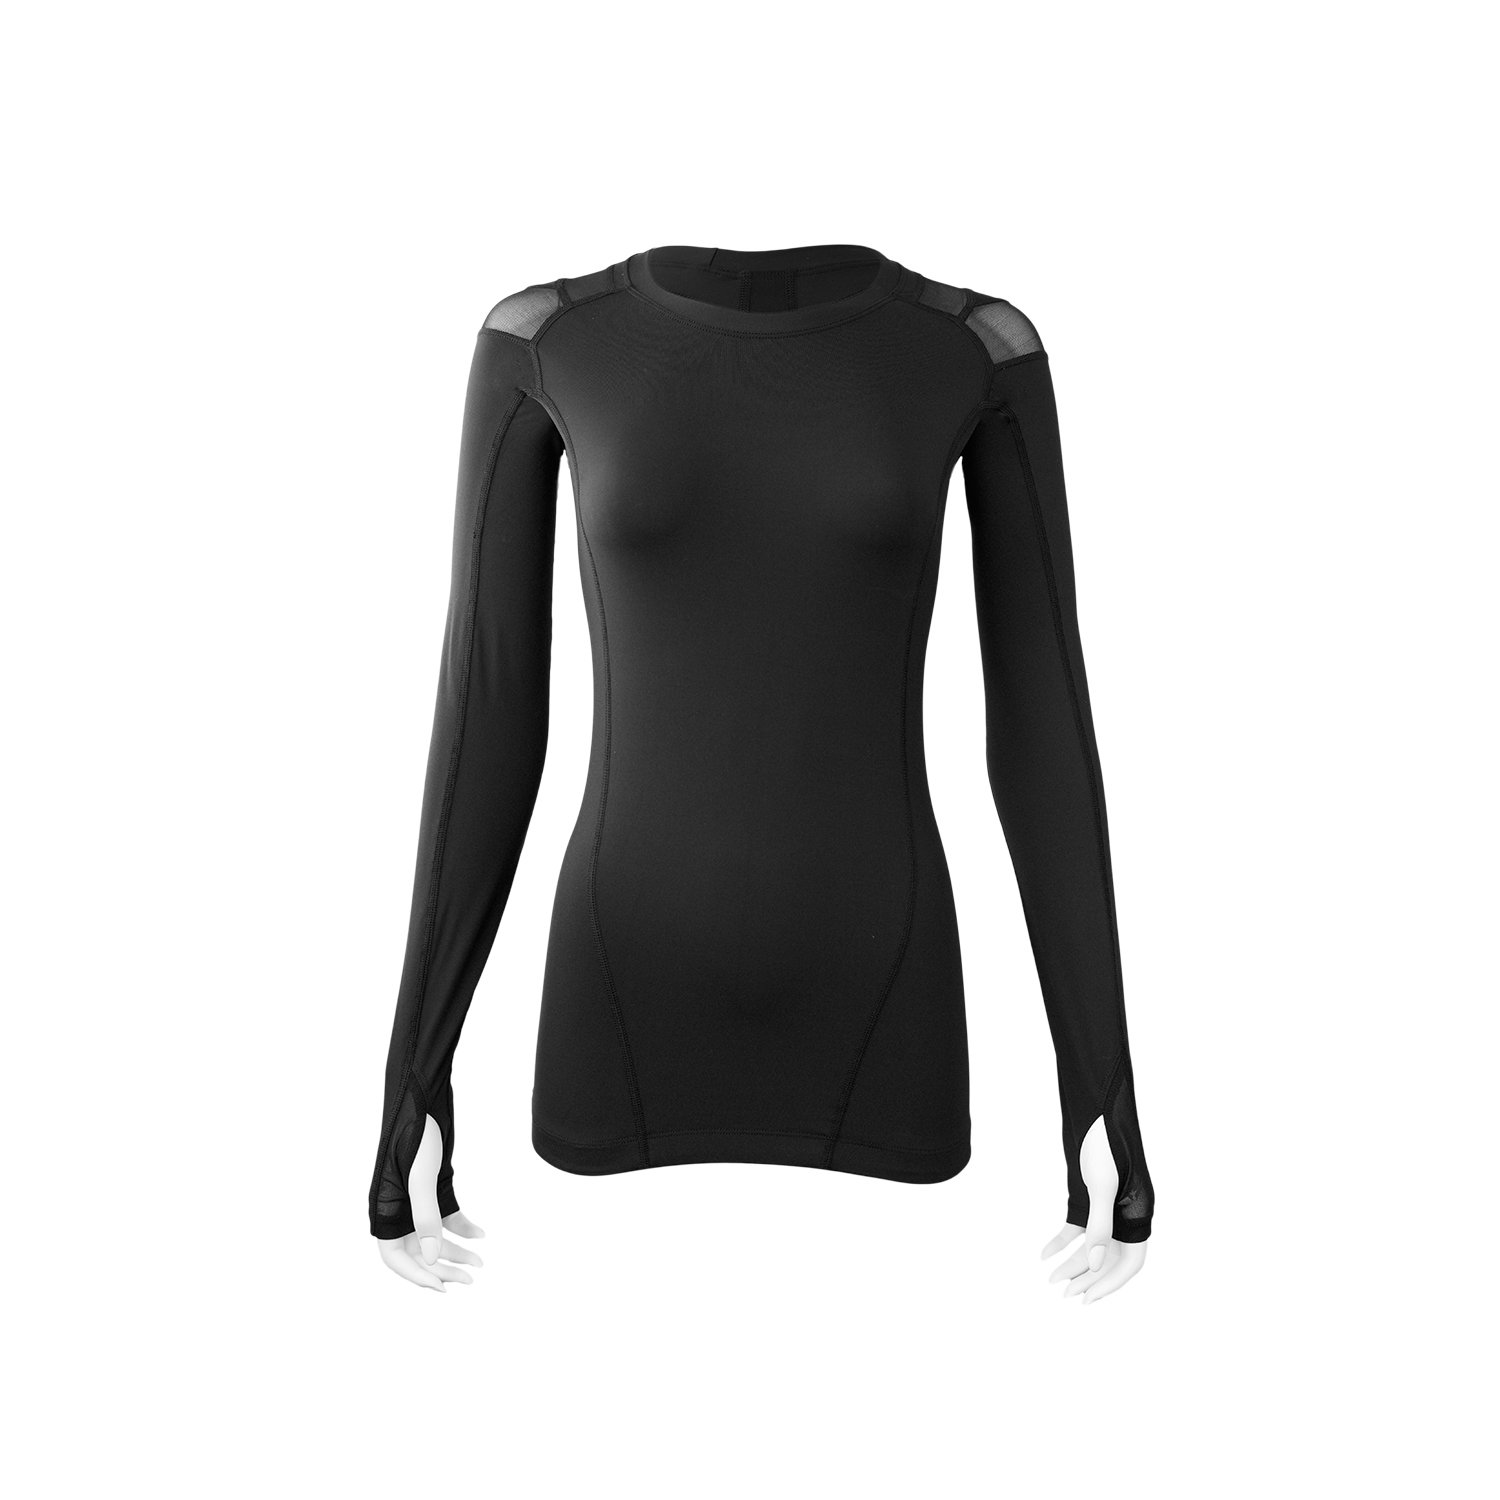 IntelliSkin Women's Foundation Long Sleeve (Medium) Black